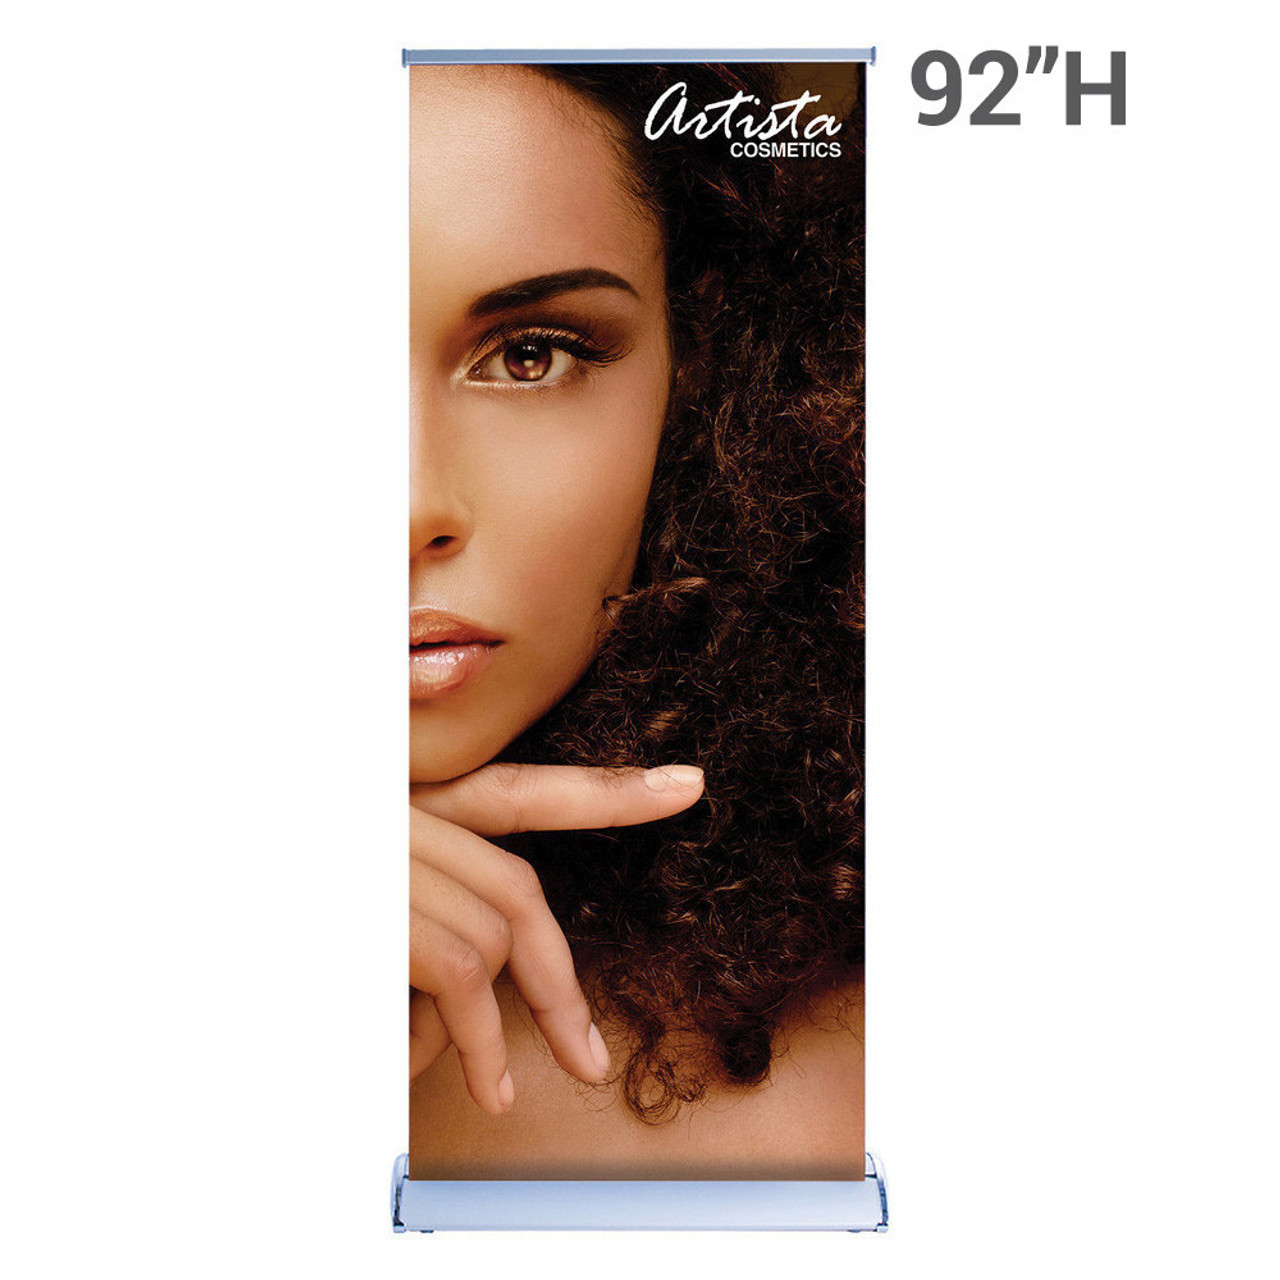 "Silverwing Retractable Banner Stand 33.5"" x 92"" with Printed Graphic"